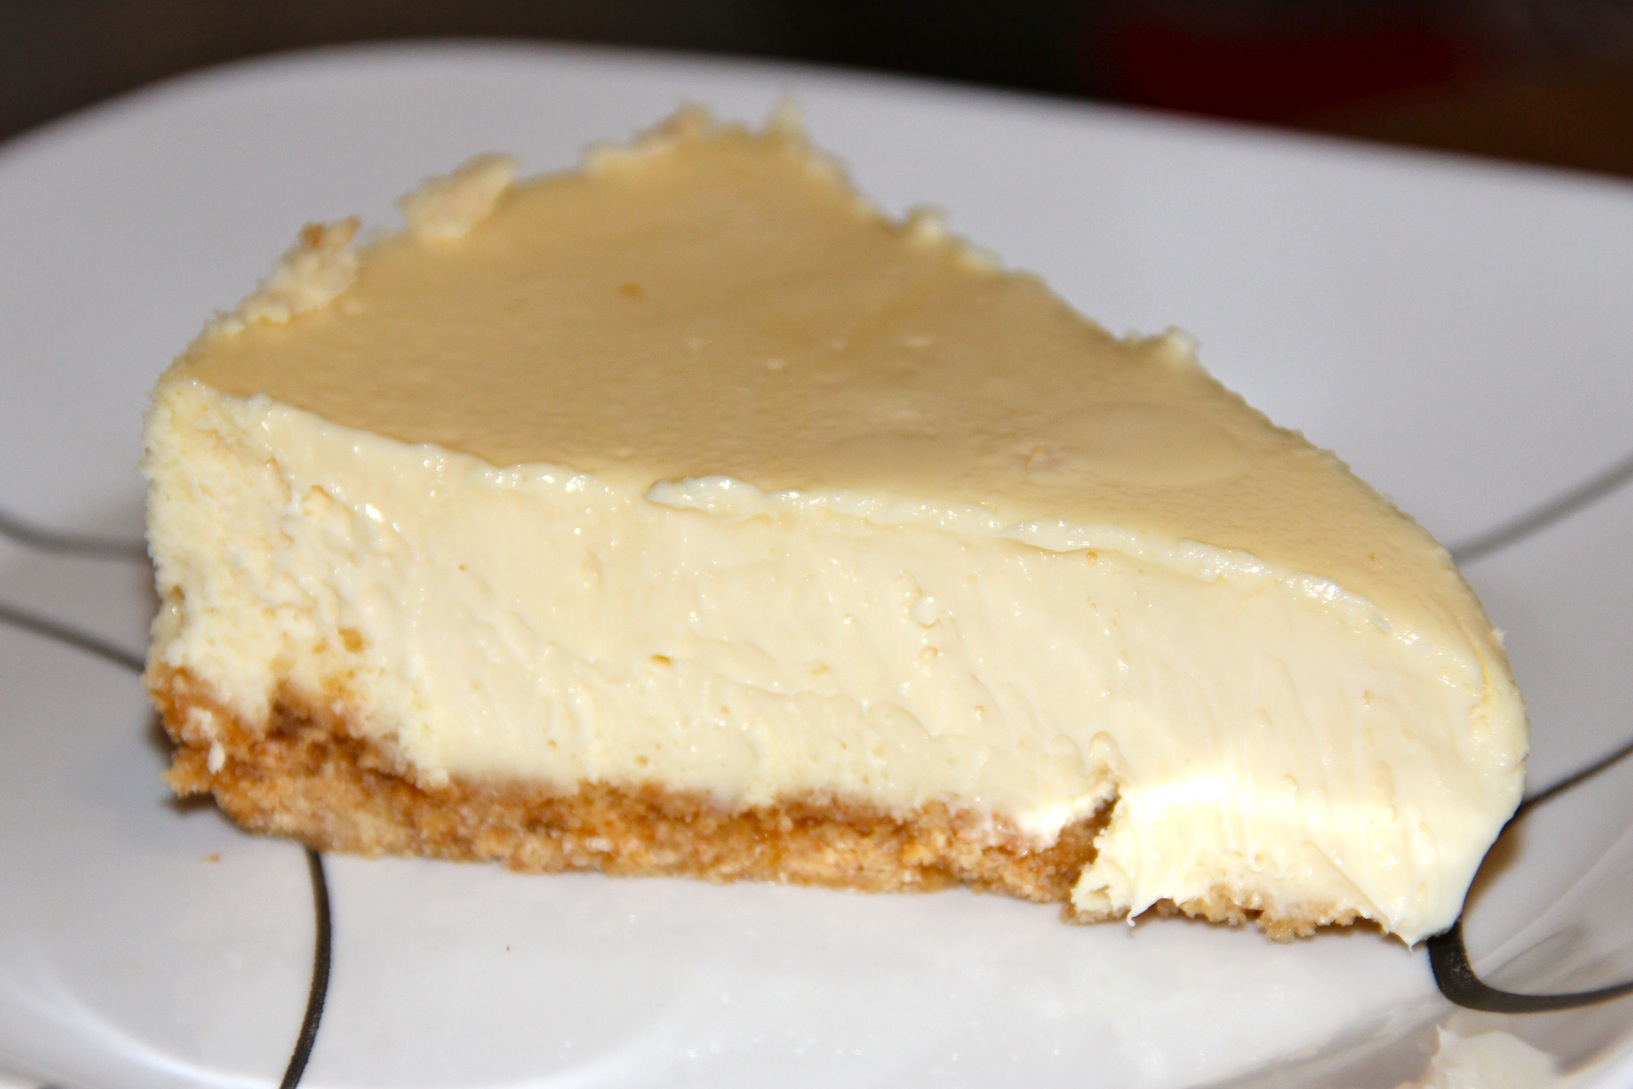 White Chocolate Cheesecake Recipe - Needles and Know How